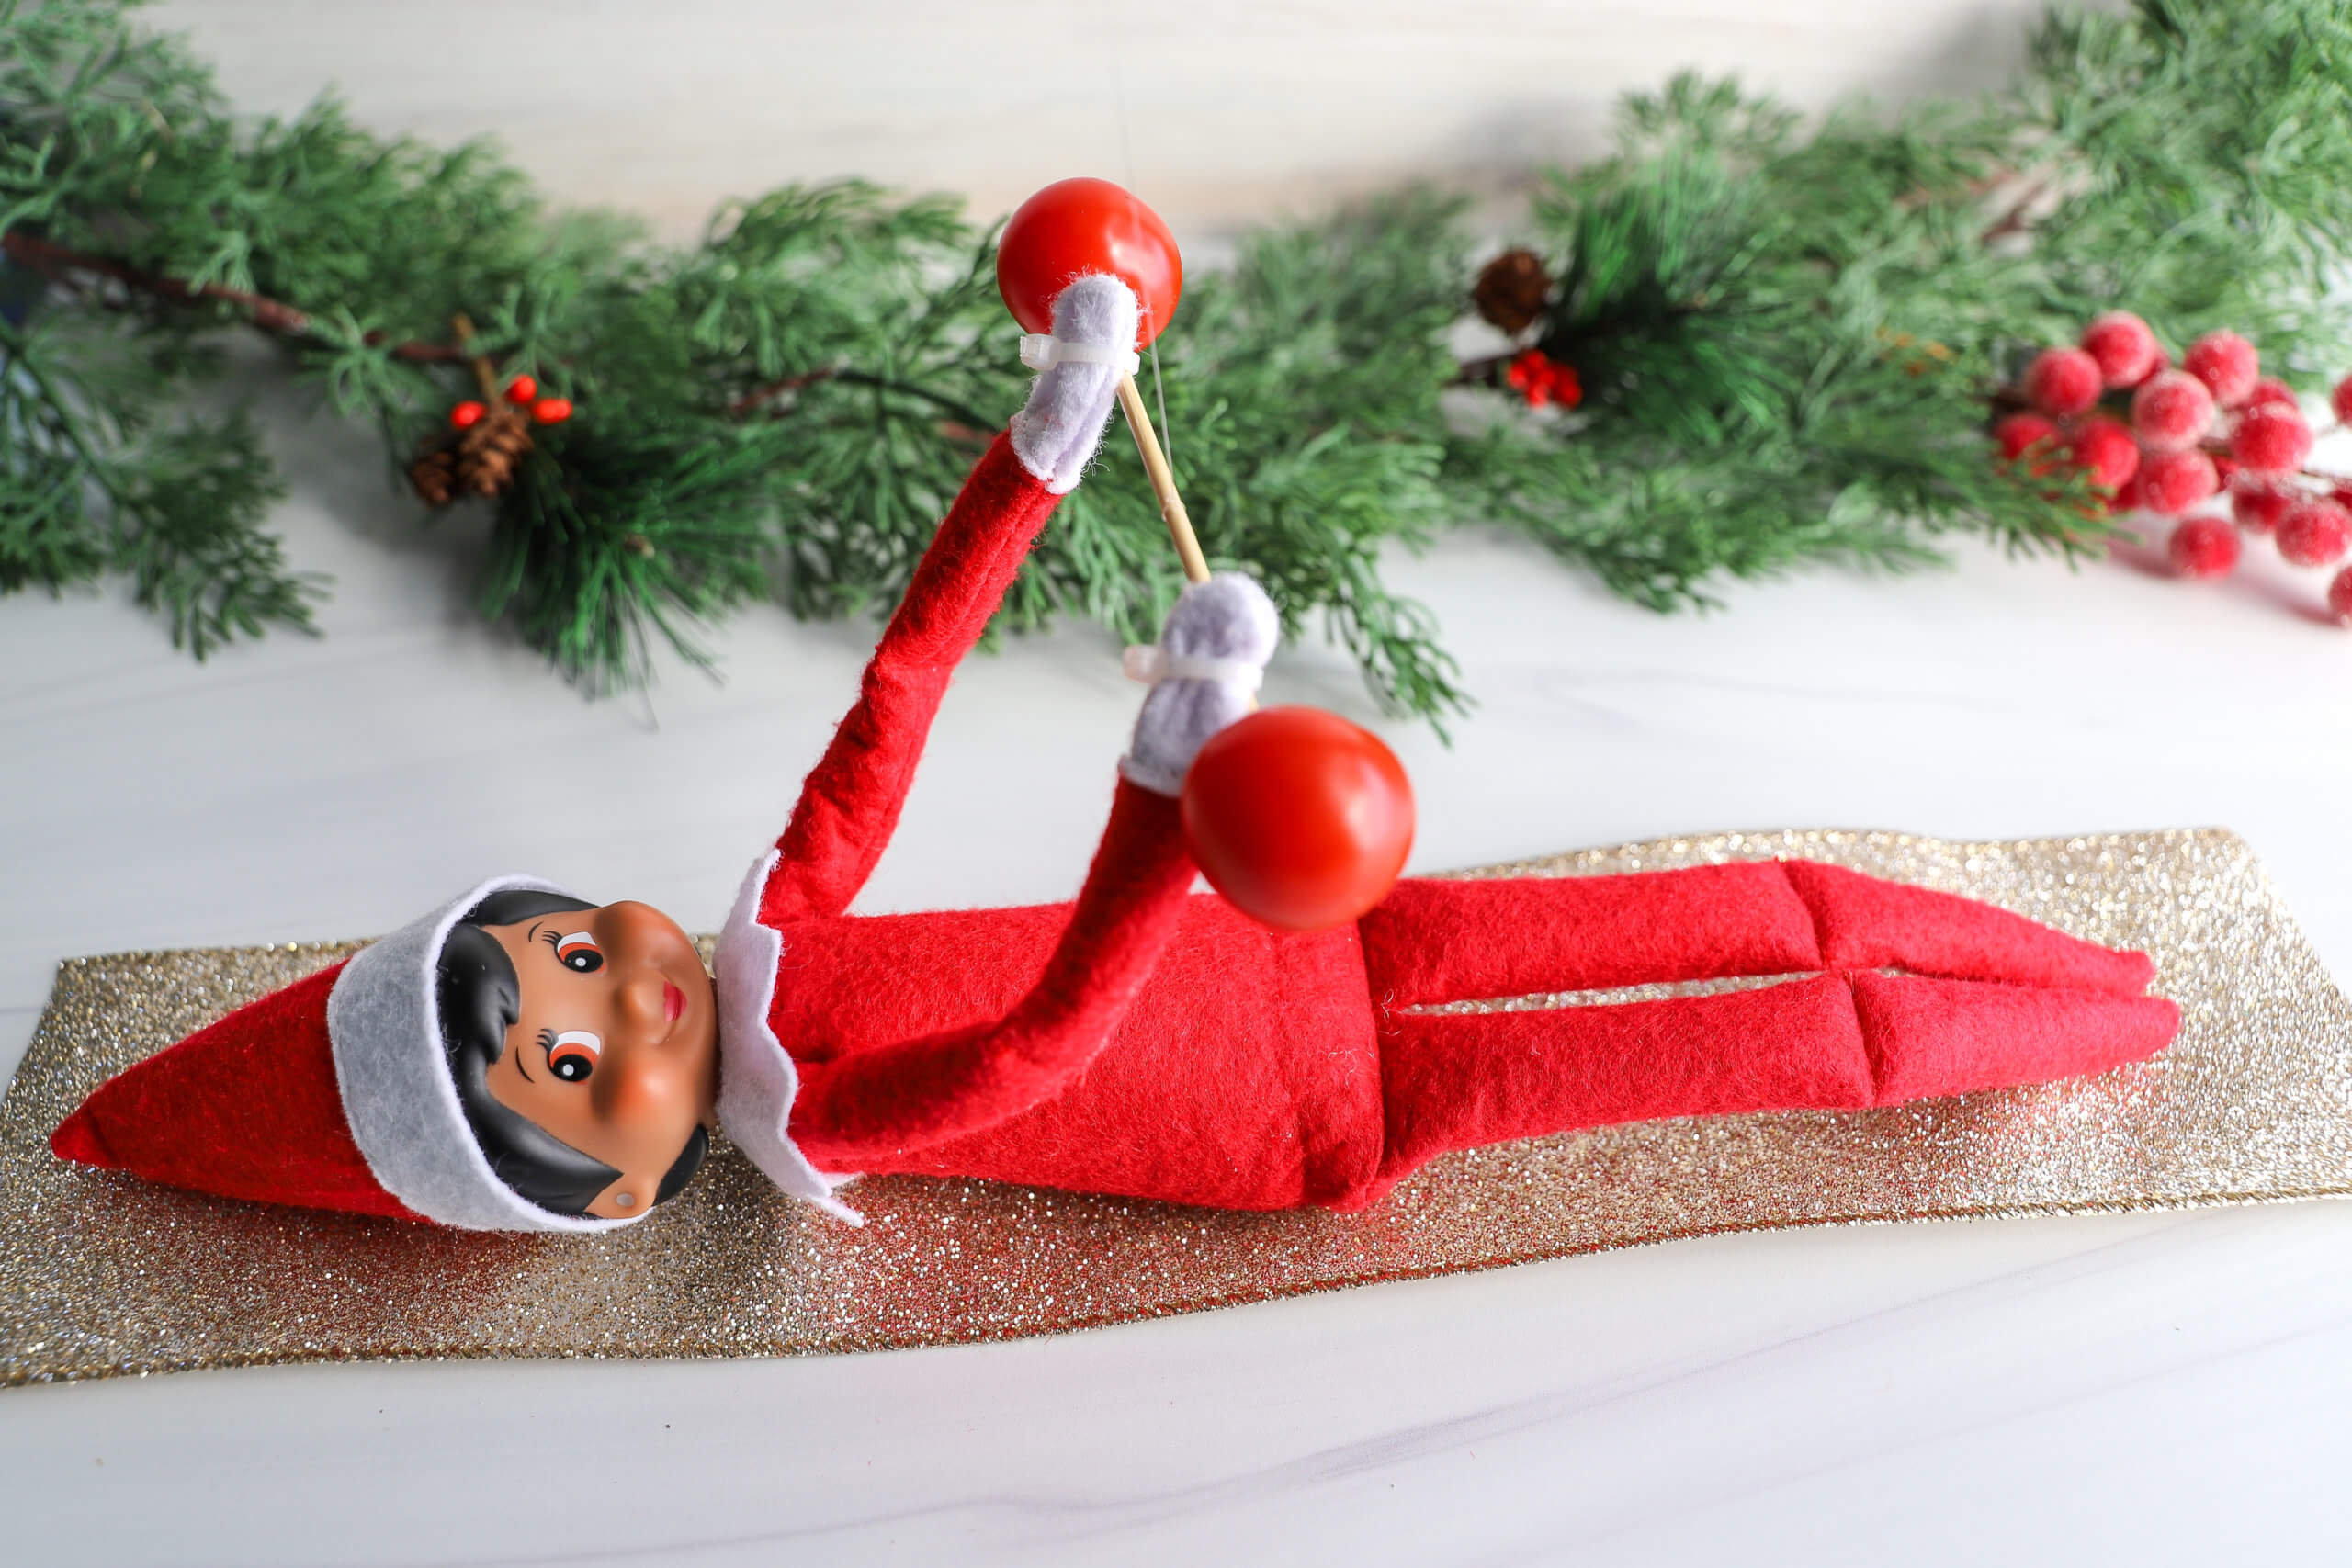 Easy Elf on the Shelf Ideas: Lifting Weights